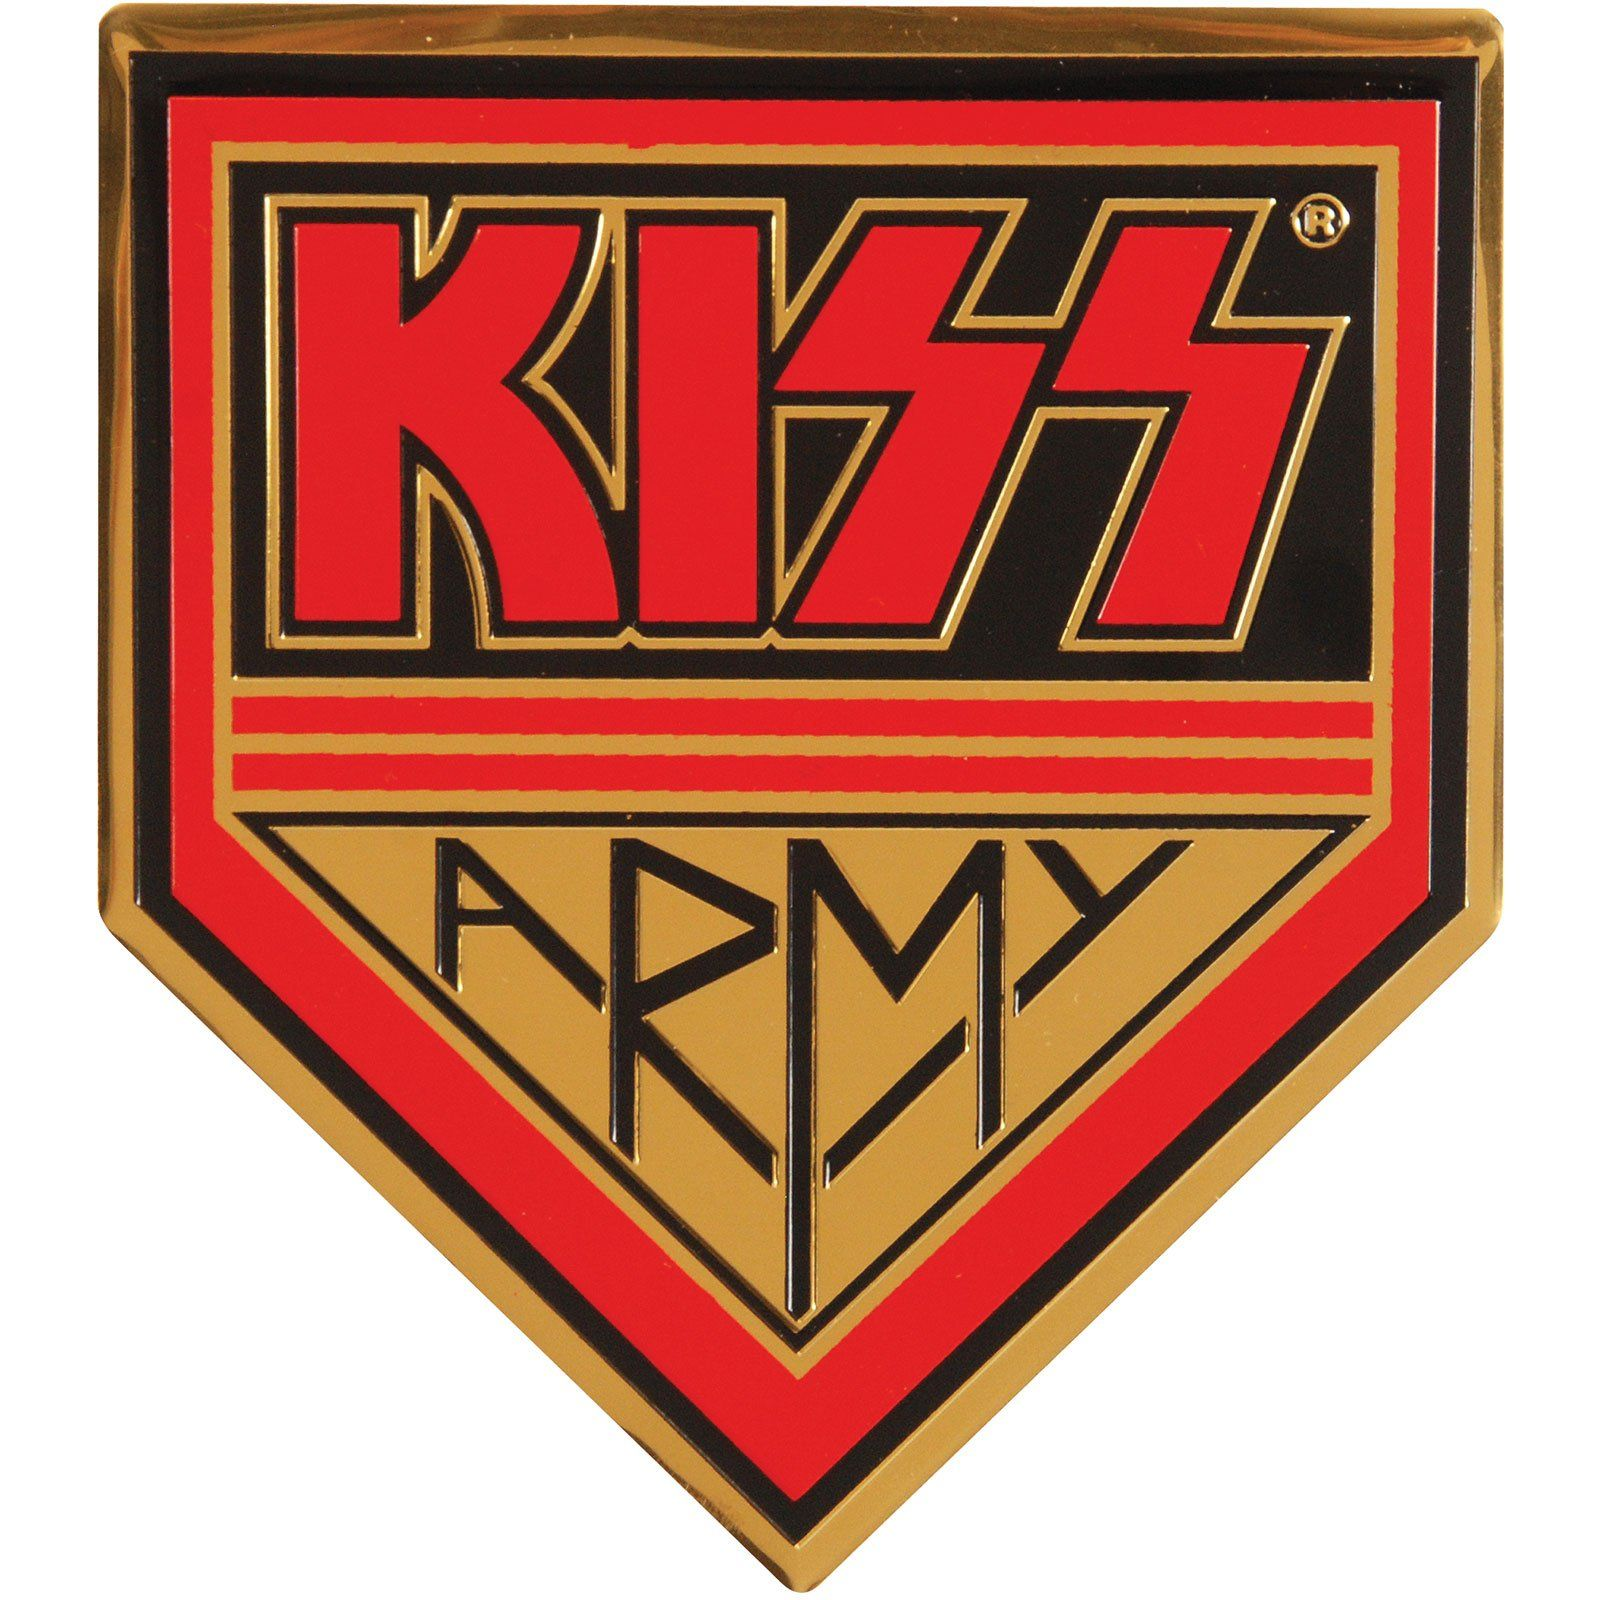 Army On Gold Sticker In 2021 Army Patches Kiss Army Army Badge